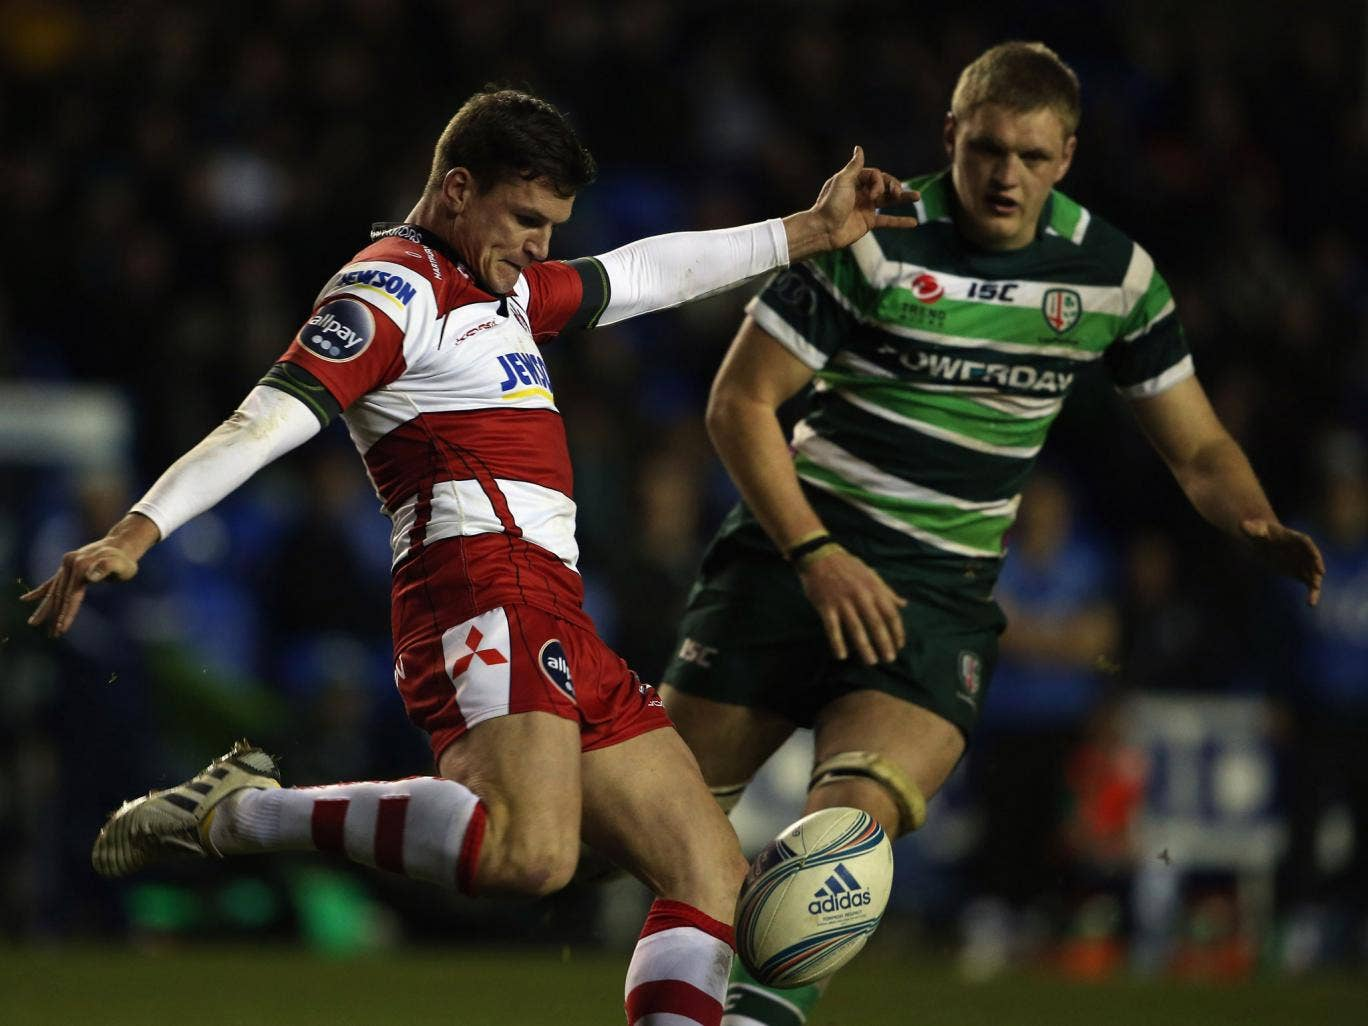 Putting the boot in: Gloucester's Freddie Burns, who scored 24 of his side's points, gets another kick away